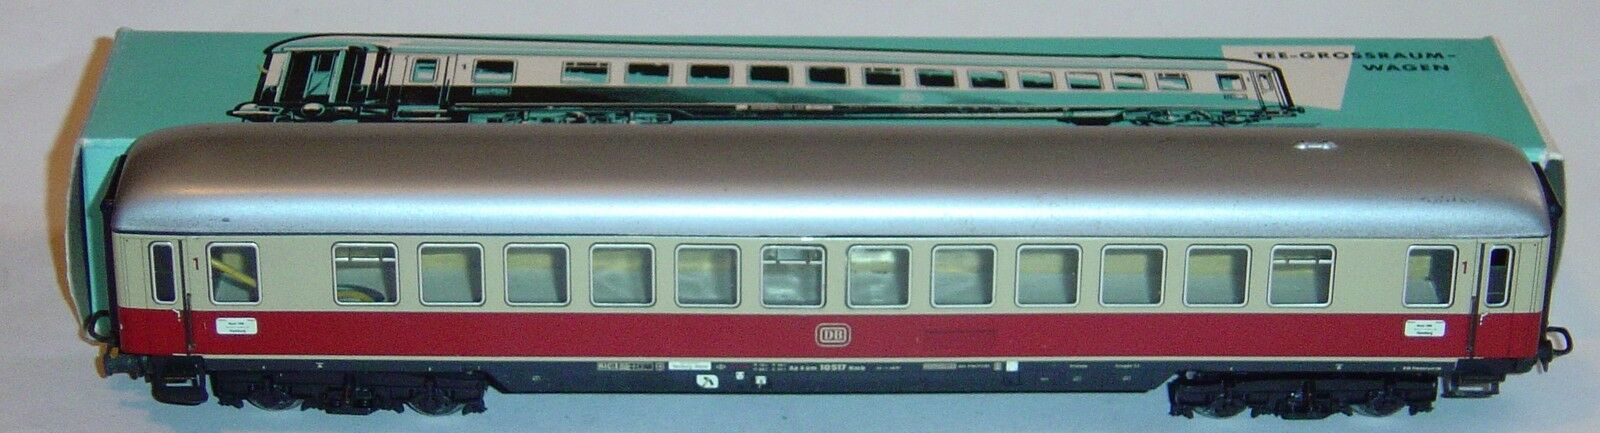 Marklin ho, 1ª class carriage tee DB ref 4056 with interior lighting original